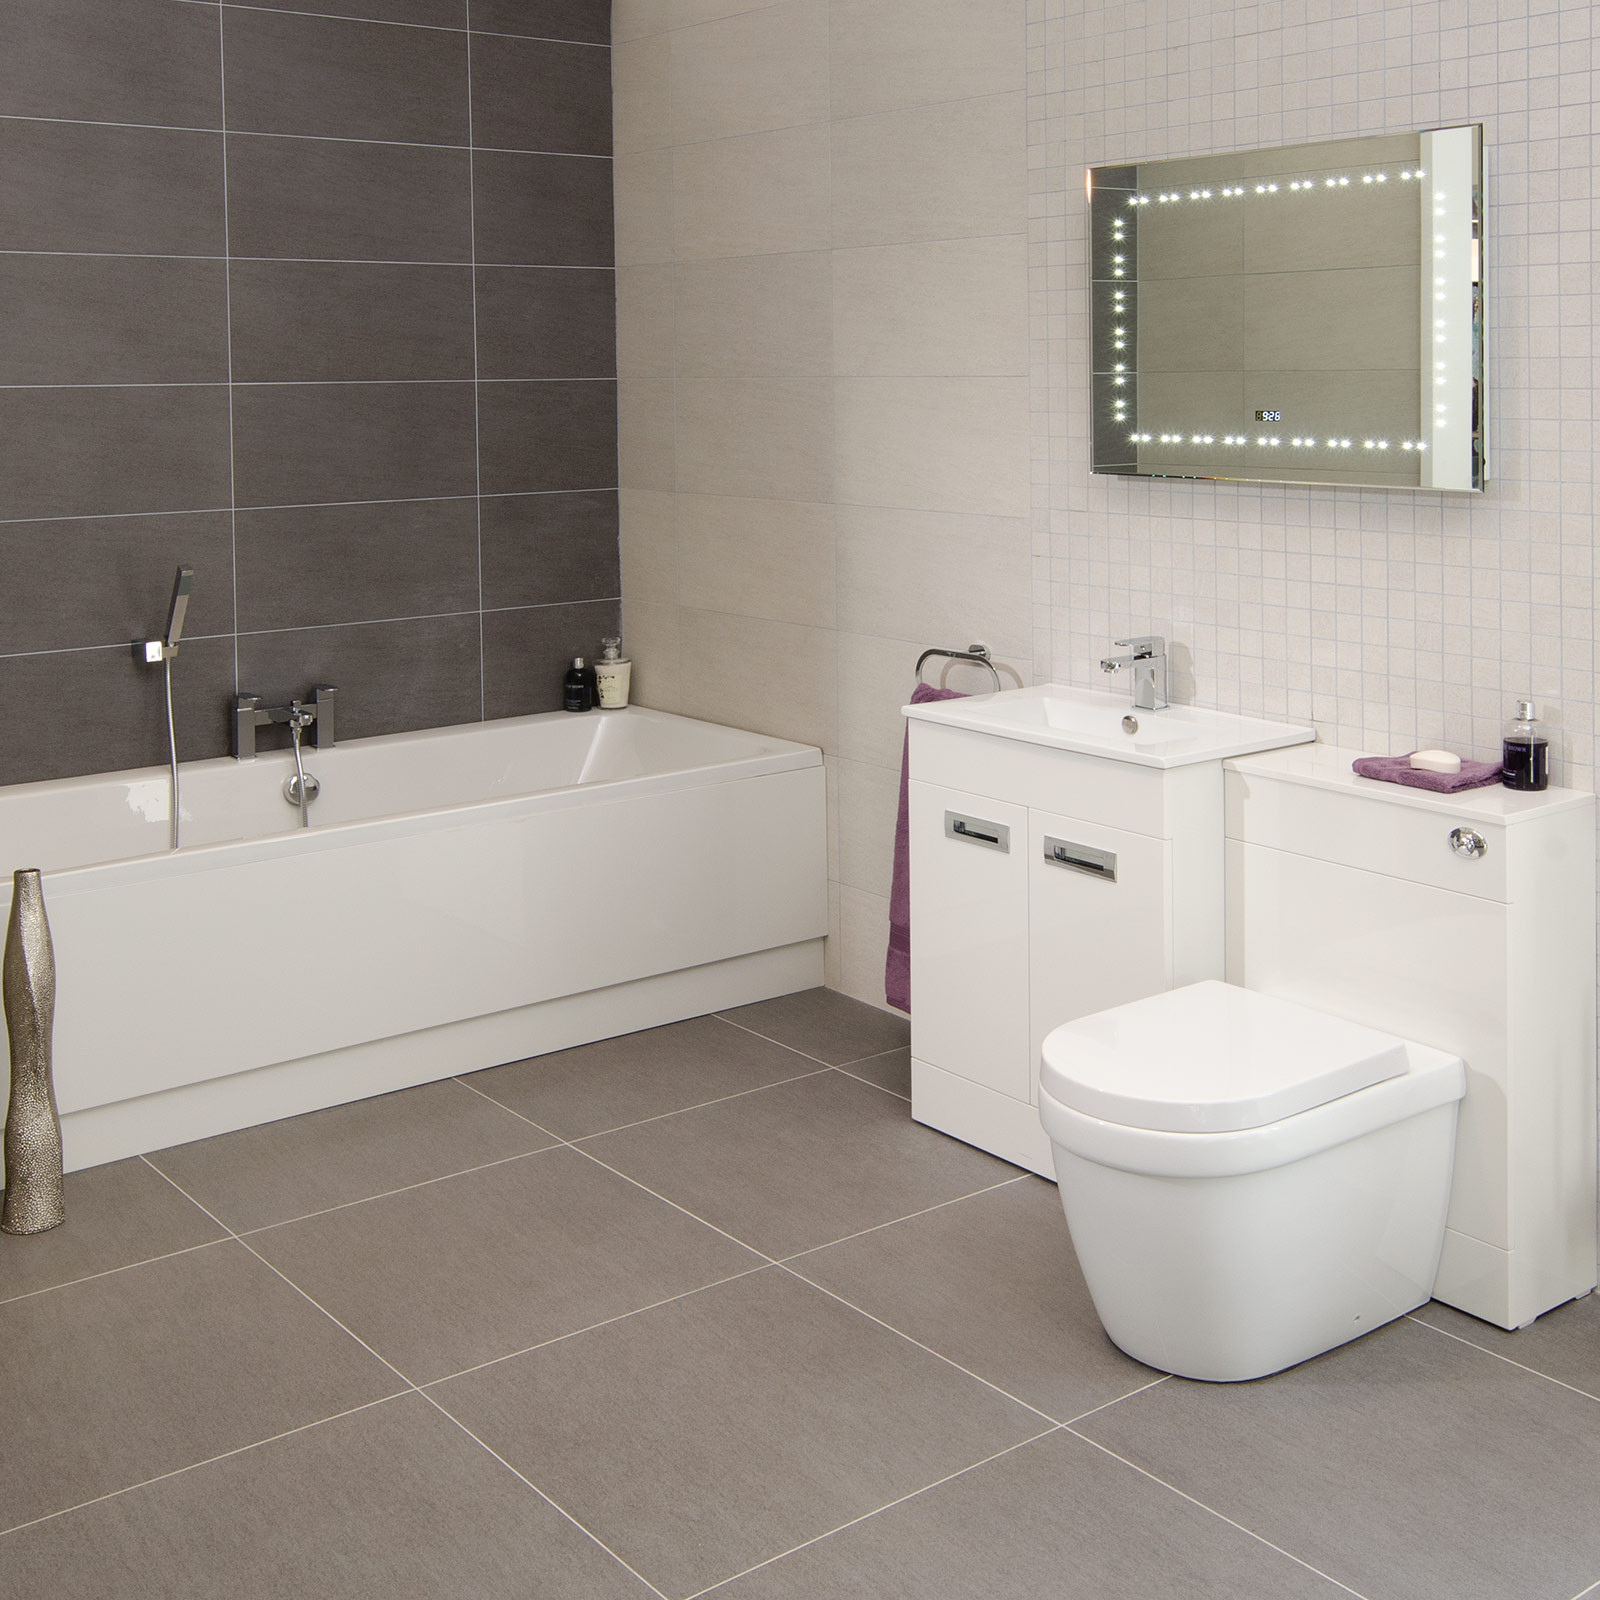 How To Do Wall Tile In Bathroom: Quattro Silver Wall/Floor Tile